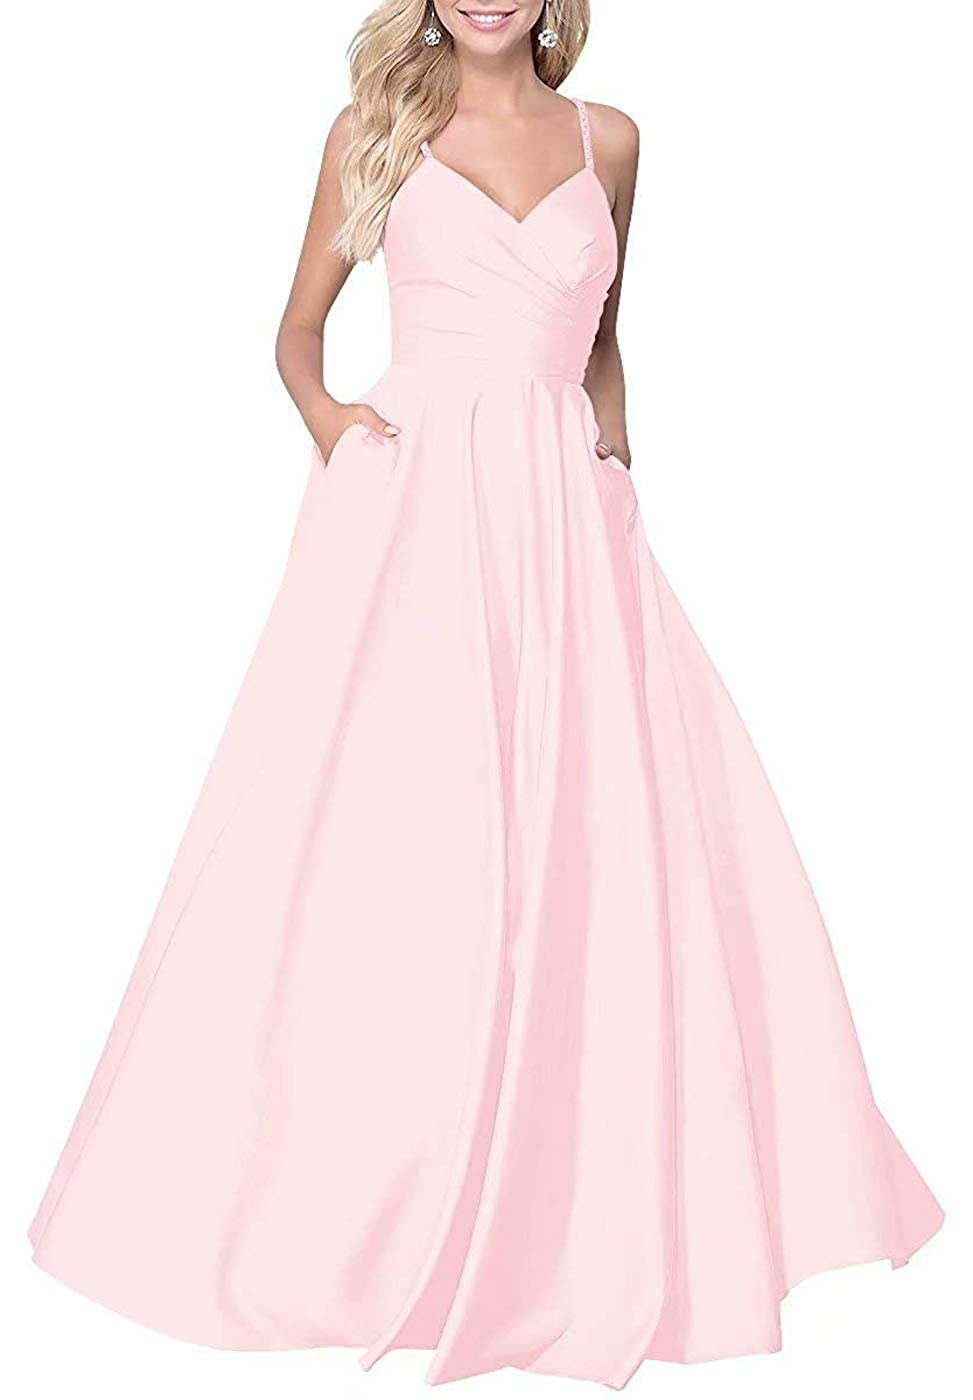 blueshing Pink RTTUTED Satin ALine Long Prom Dresses for Women V Neck Formal Evening Gown with Pockets